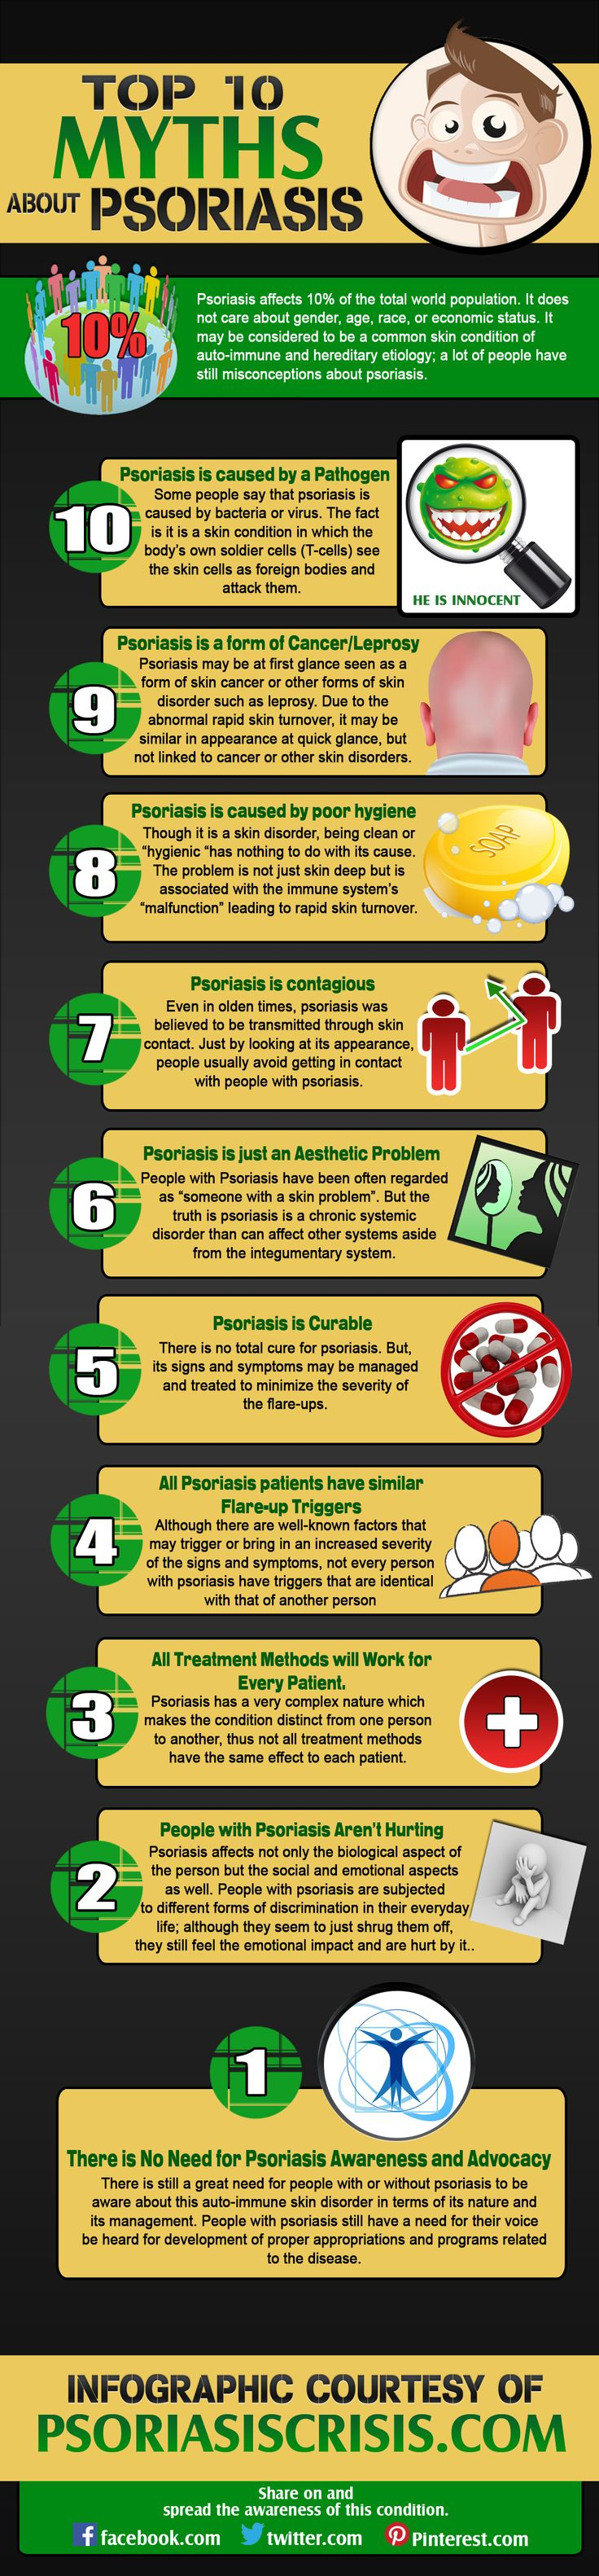 Psoriasis affects 10% of the total world population. It does not care about gender, age, race, or economic status. It may be considered to be a common skin condition of auto-immune and hereditary etiology; a lot of people have still misconceptions about psoriasis. Here is an #Infographic about the #myths of #Psoriasis